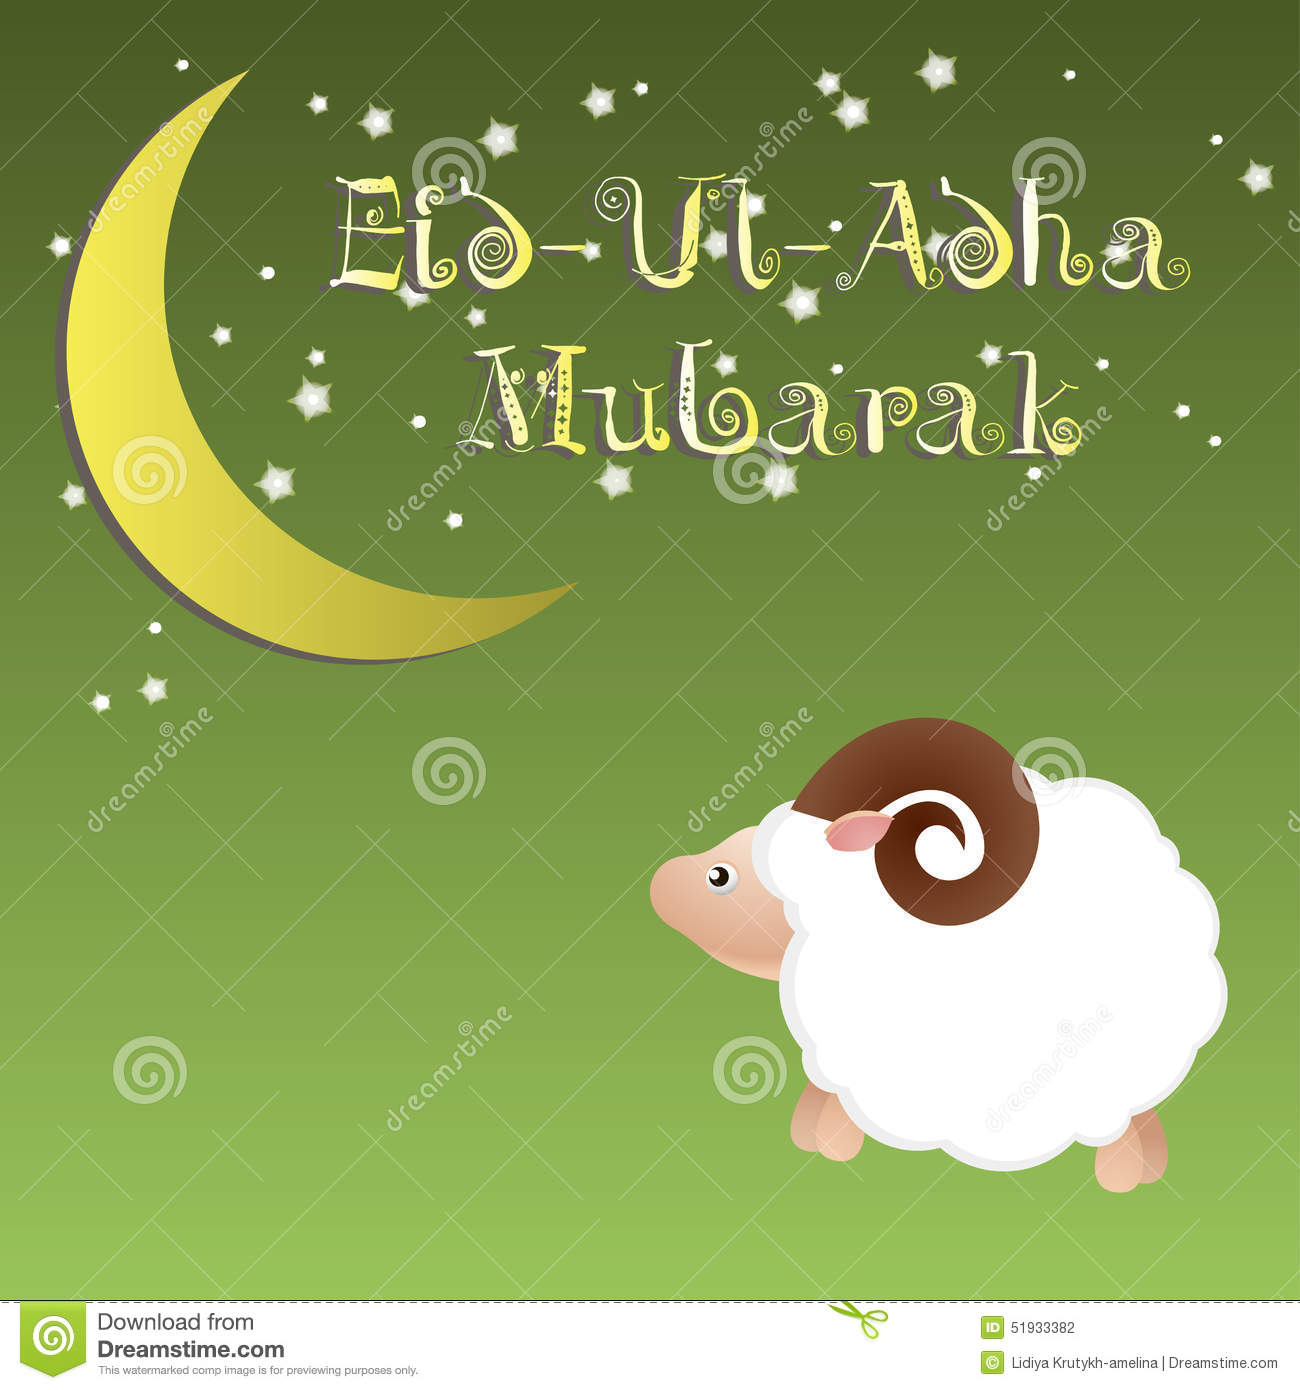 Muslim community festival of sacrifice eid ul adha greeting card muslim community festival of sacrifice eid ul adha greeting card background with sheep moon and stars kristyandbryce Choice Image